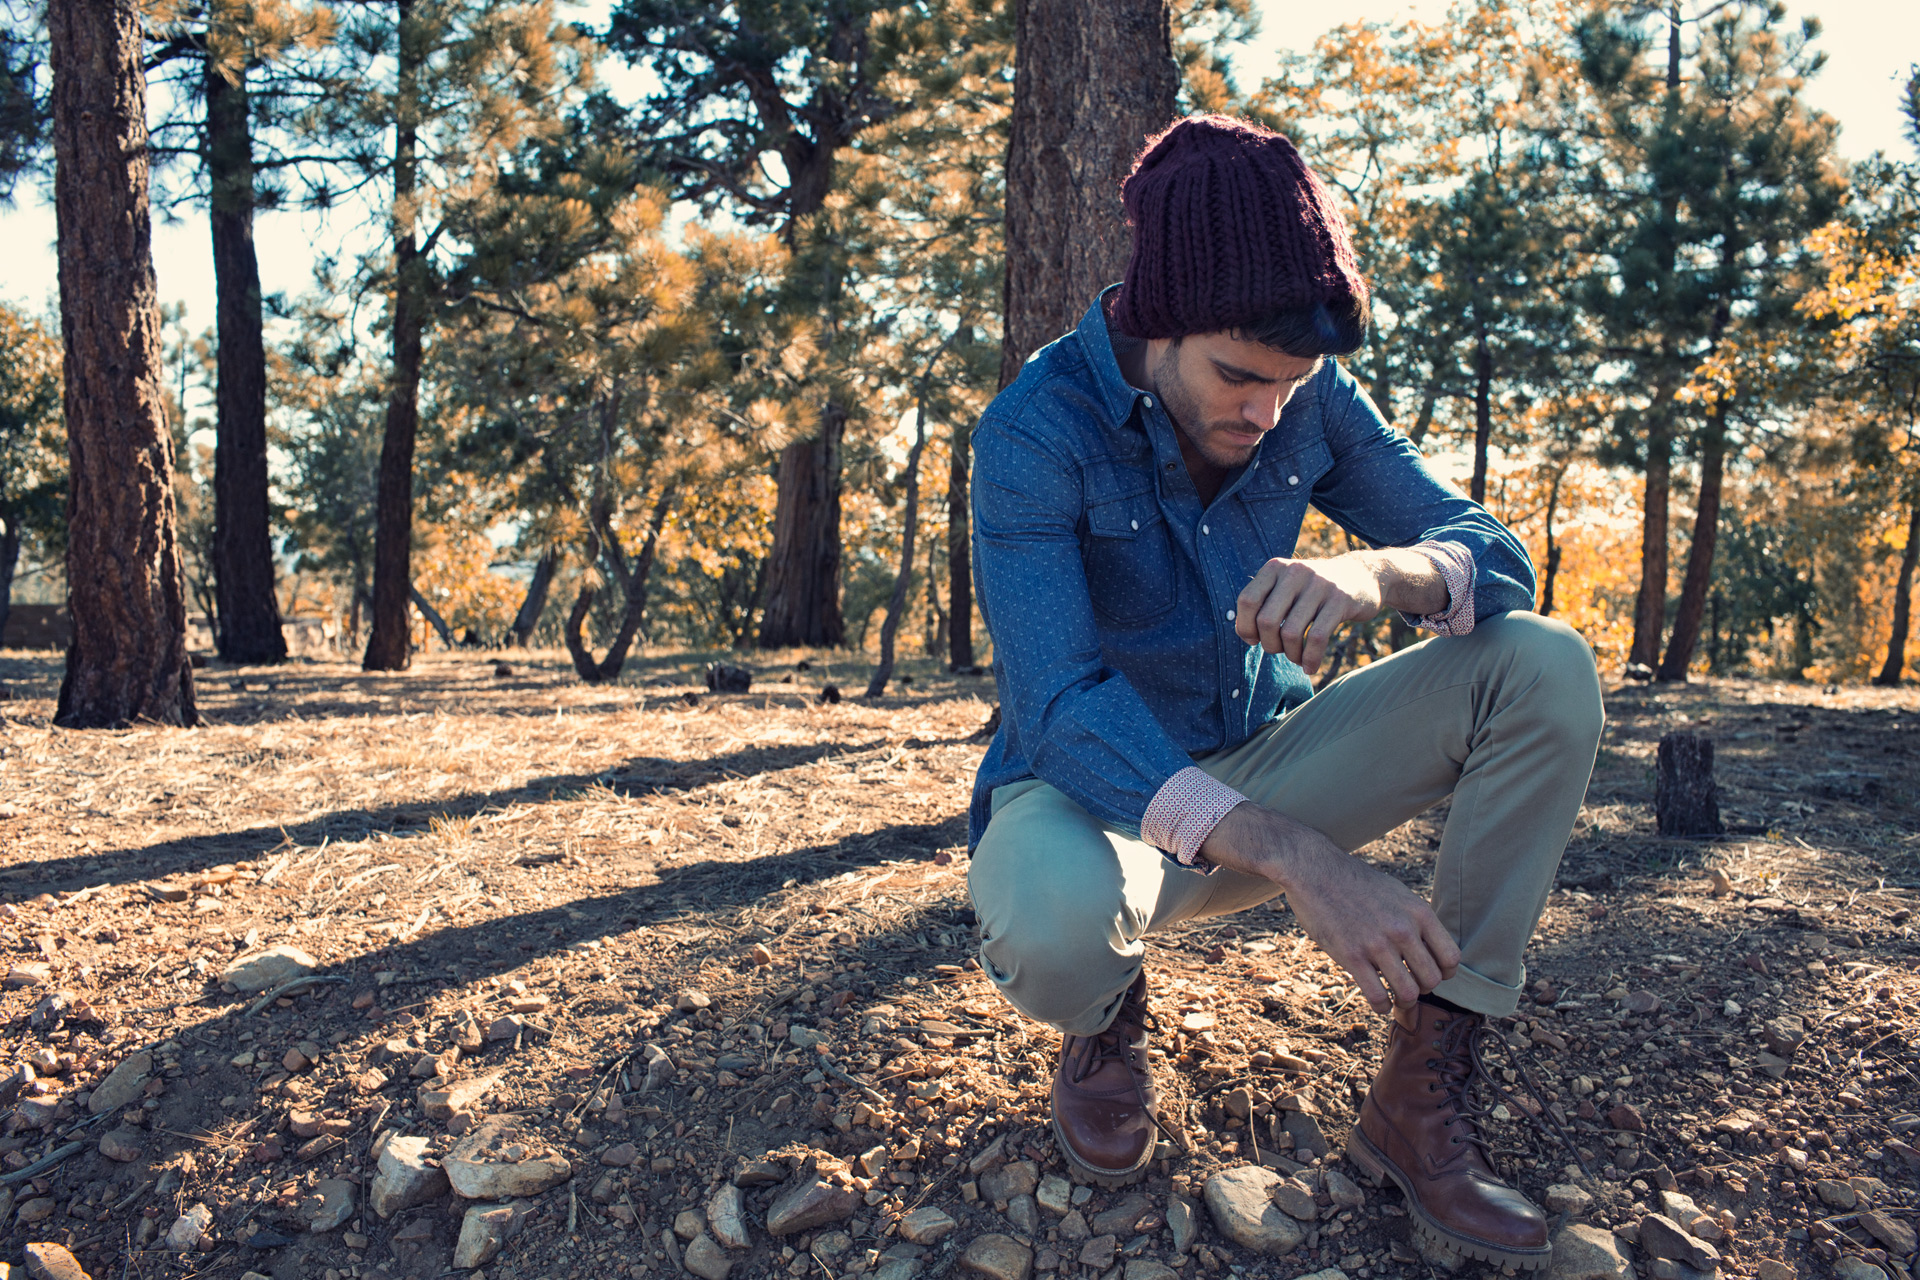 Mark DeLong - Lifestyle Photography - Model wearing a dark red beanie bending down to fix his shoe